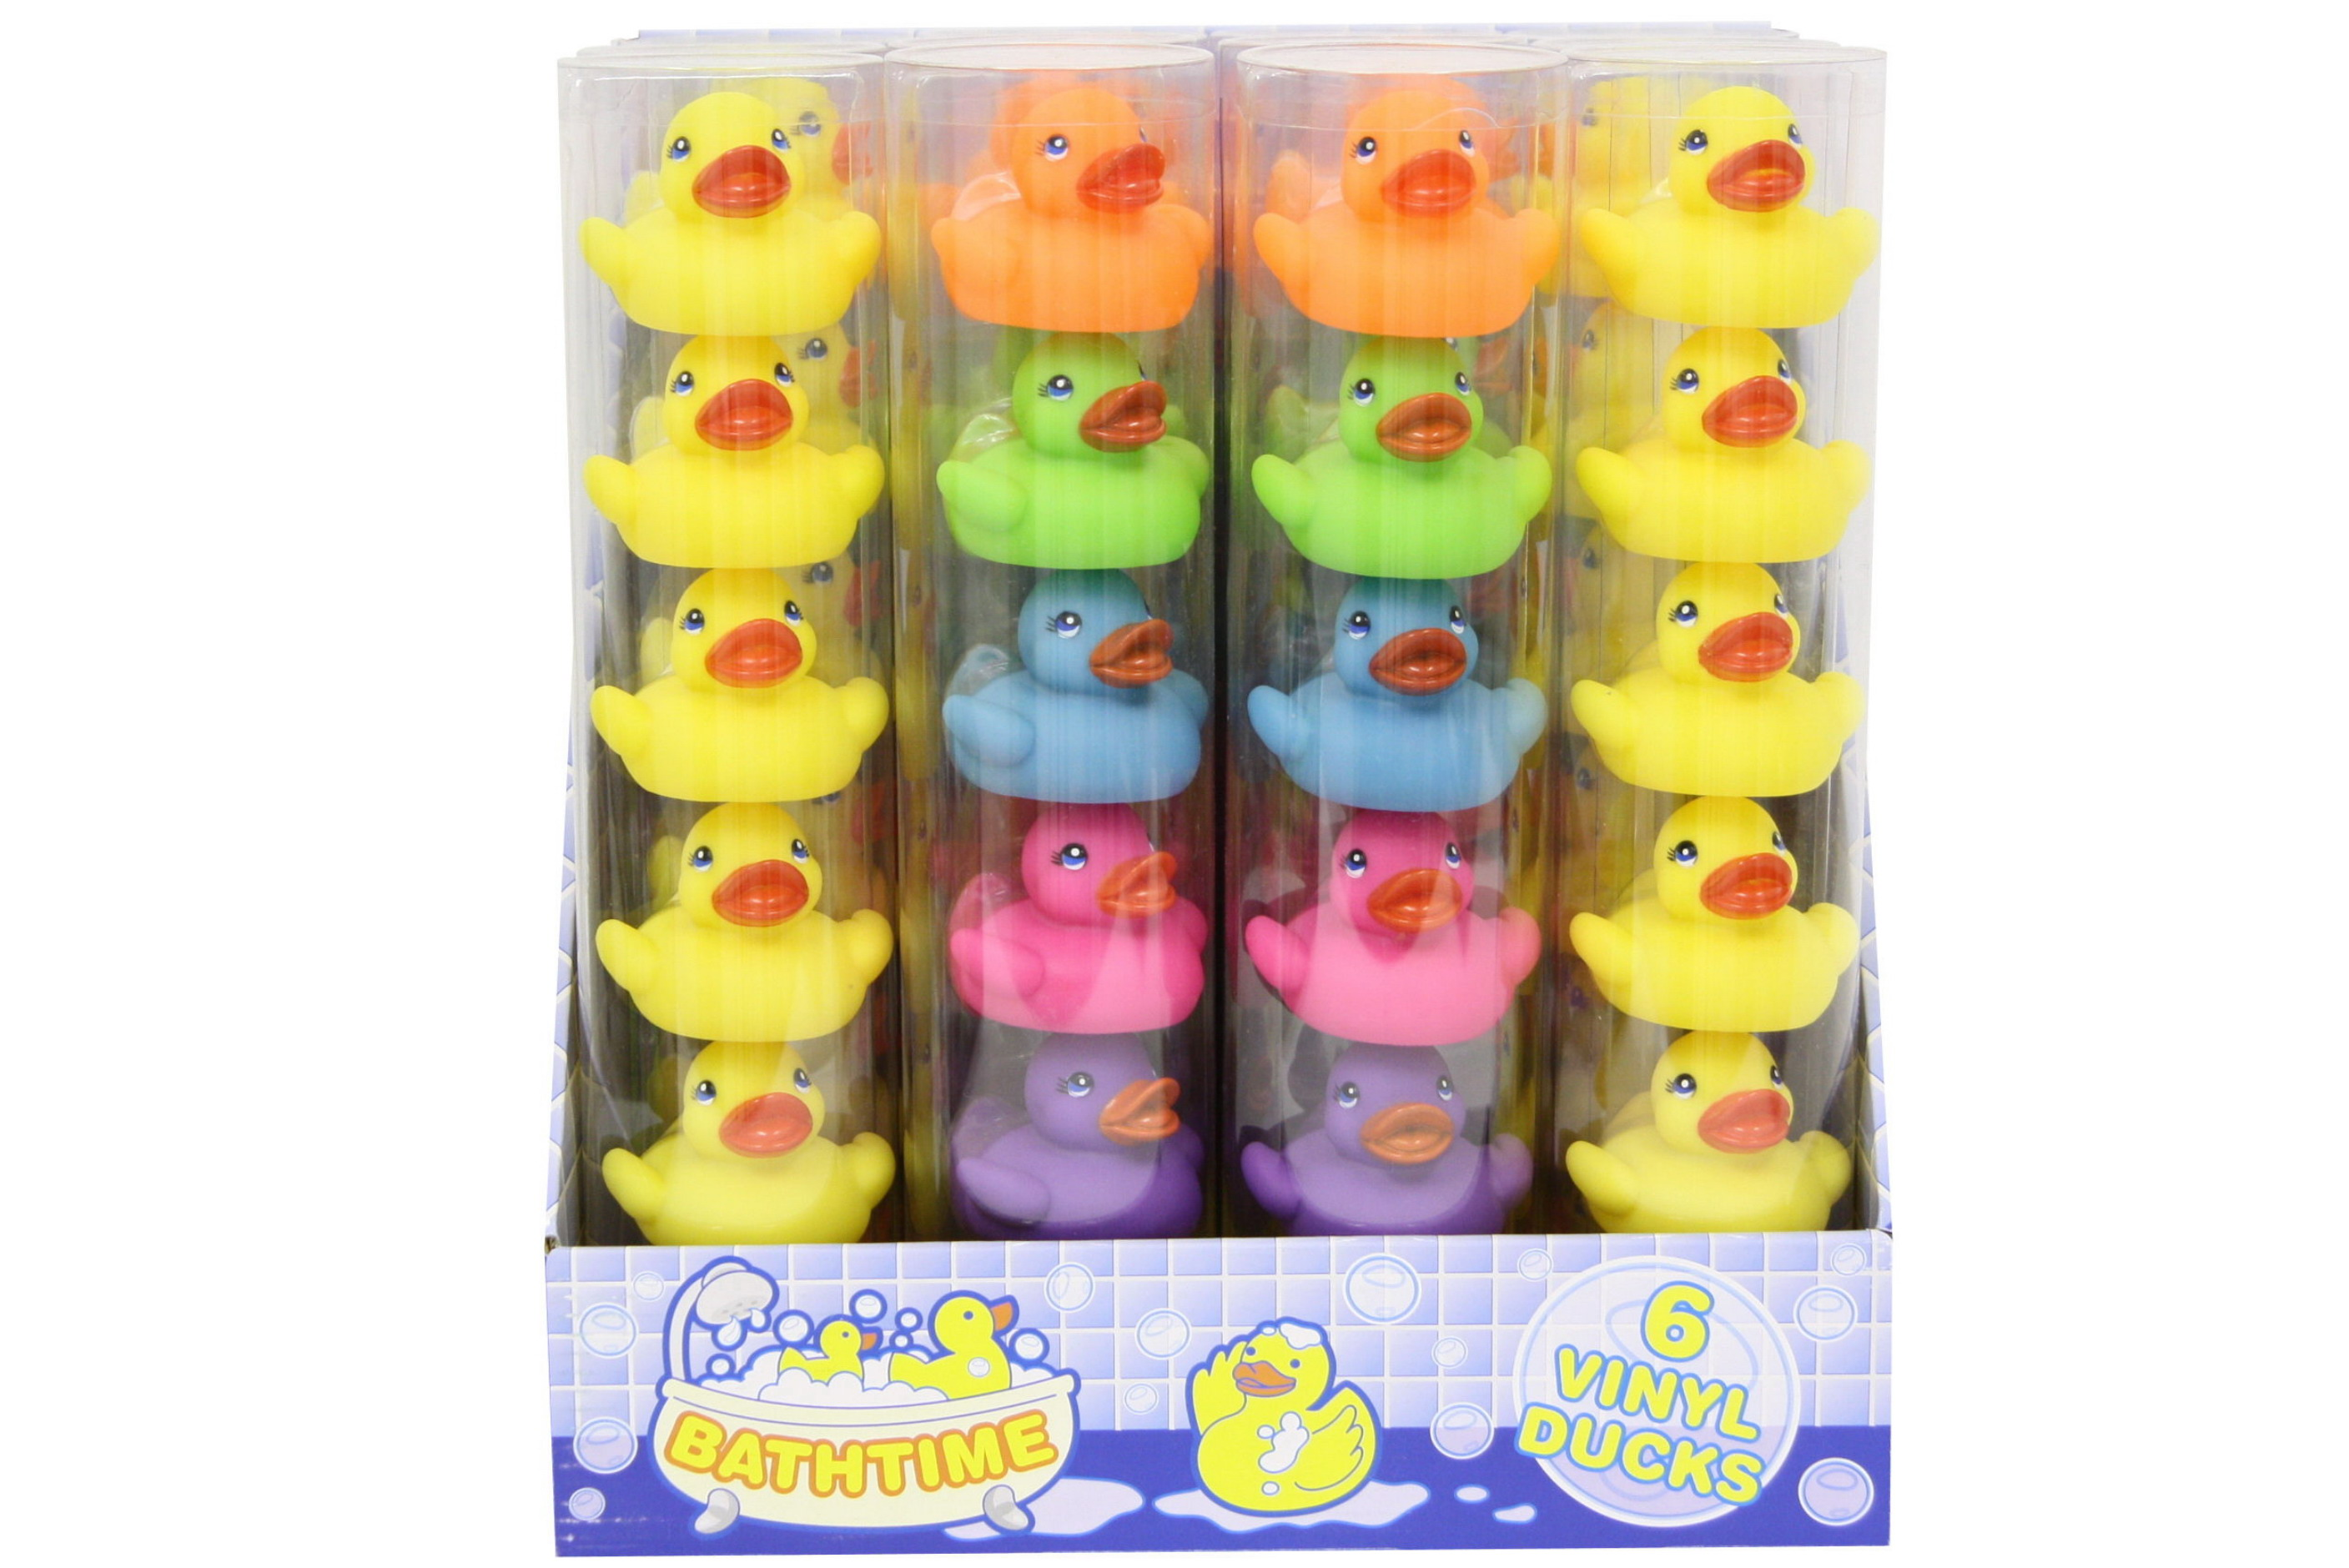 6pc Vinyl Duck In Tube Assorted Colours Pdq Bathtime